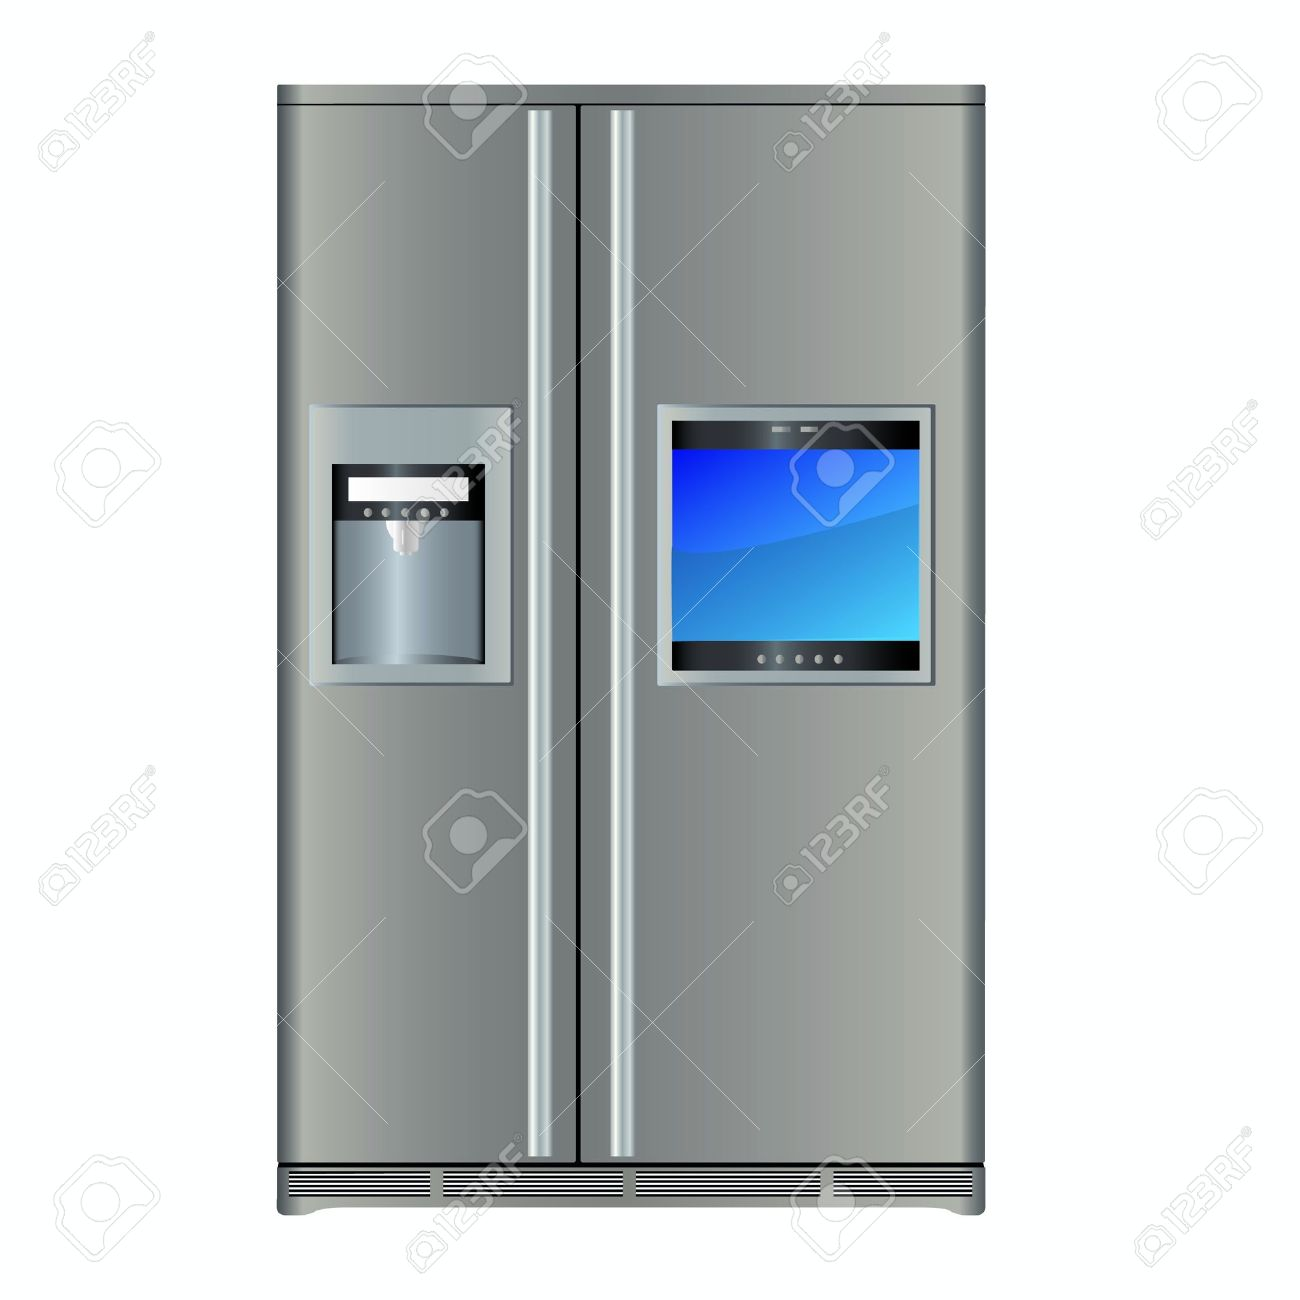 Modern Refrigerators With Built In TV Stock Vector   13205062